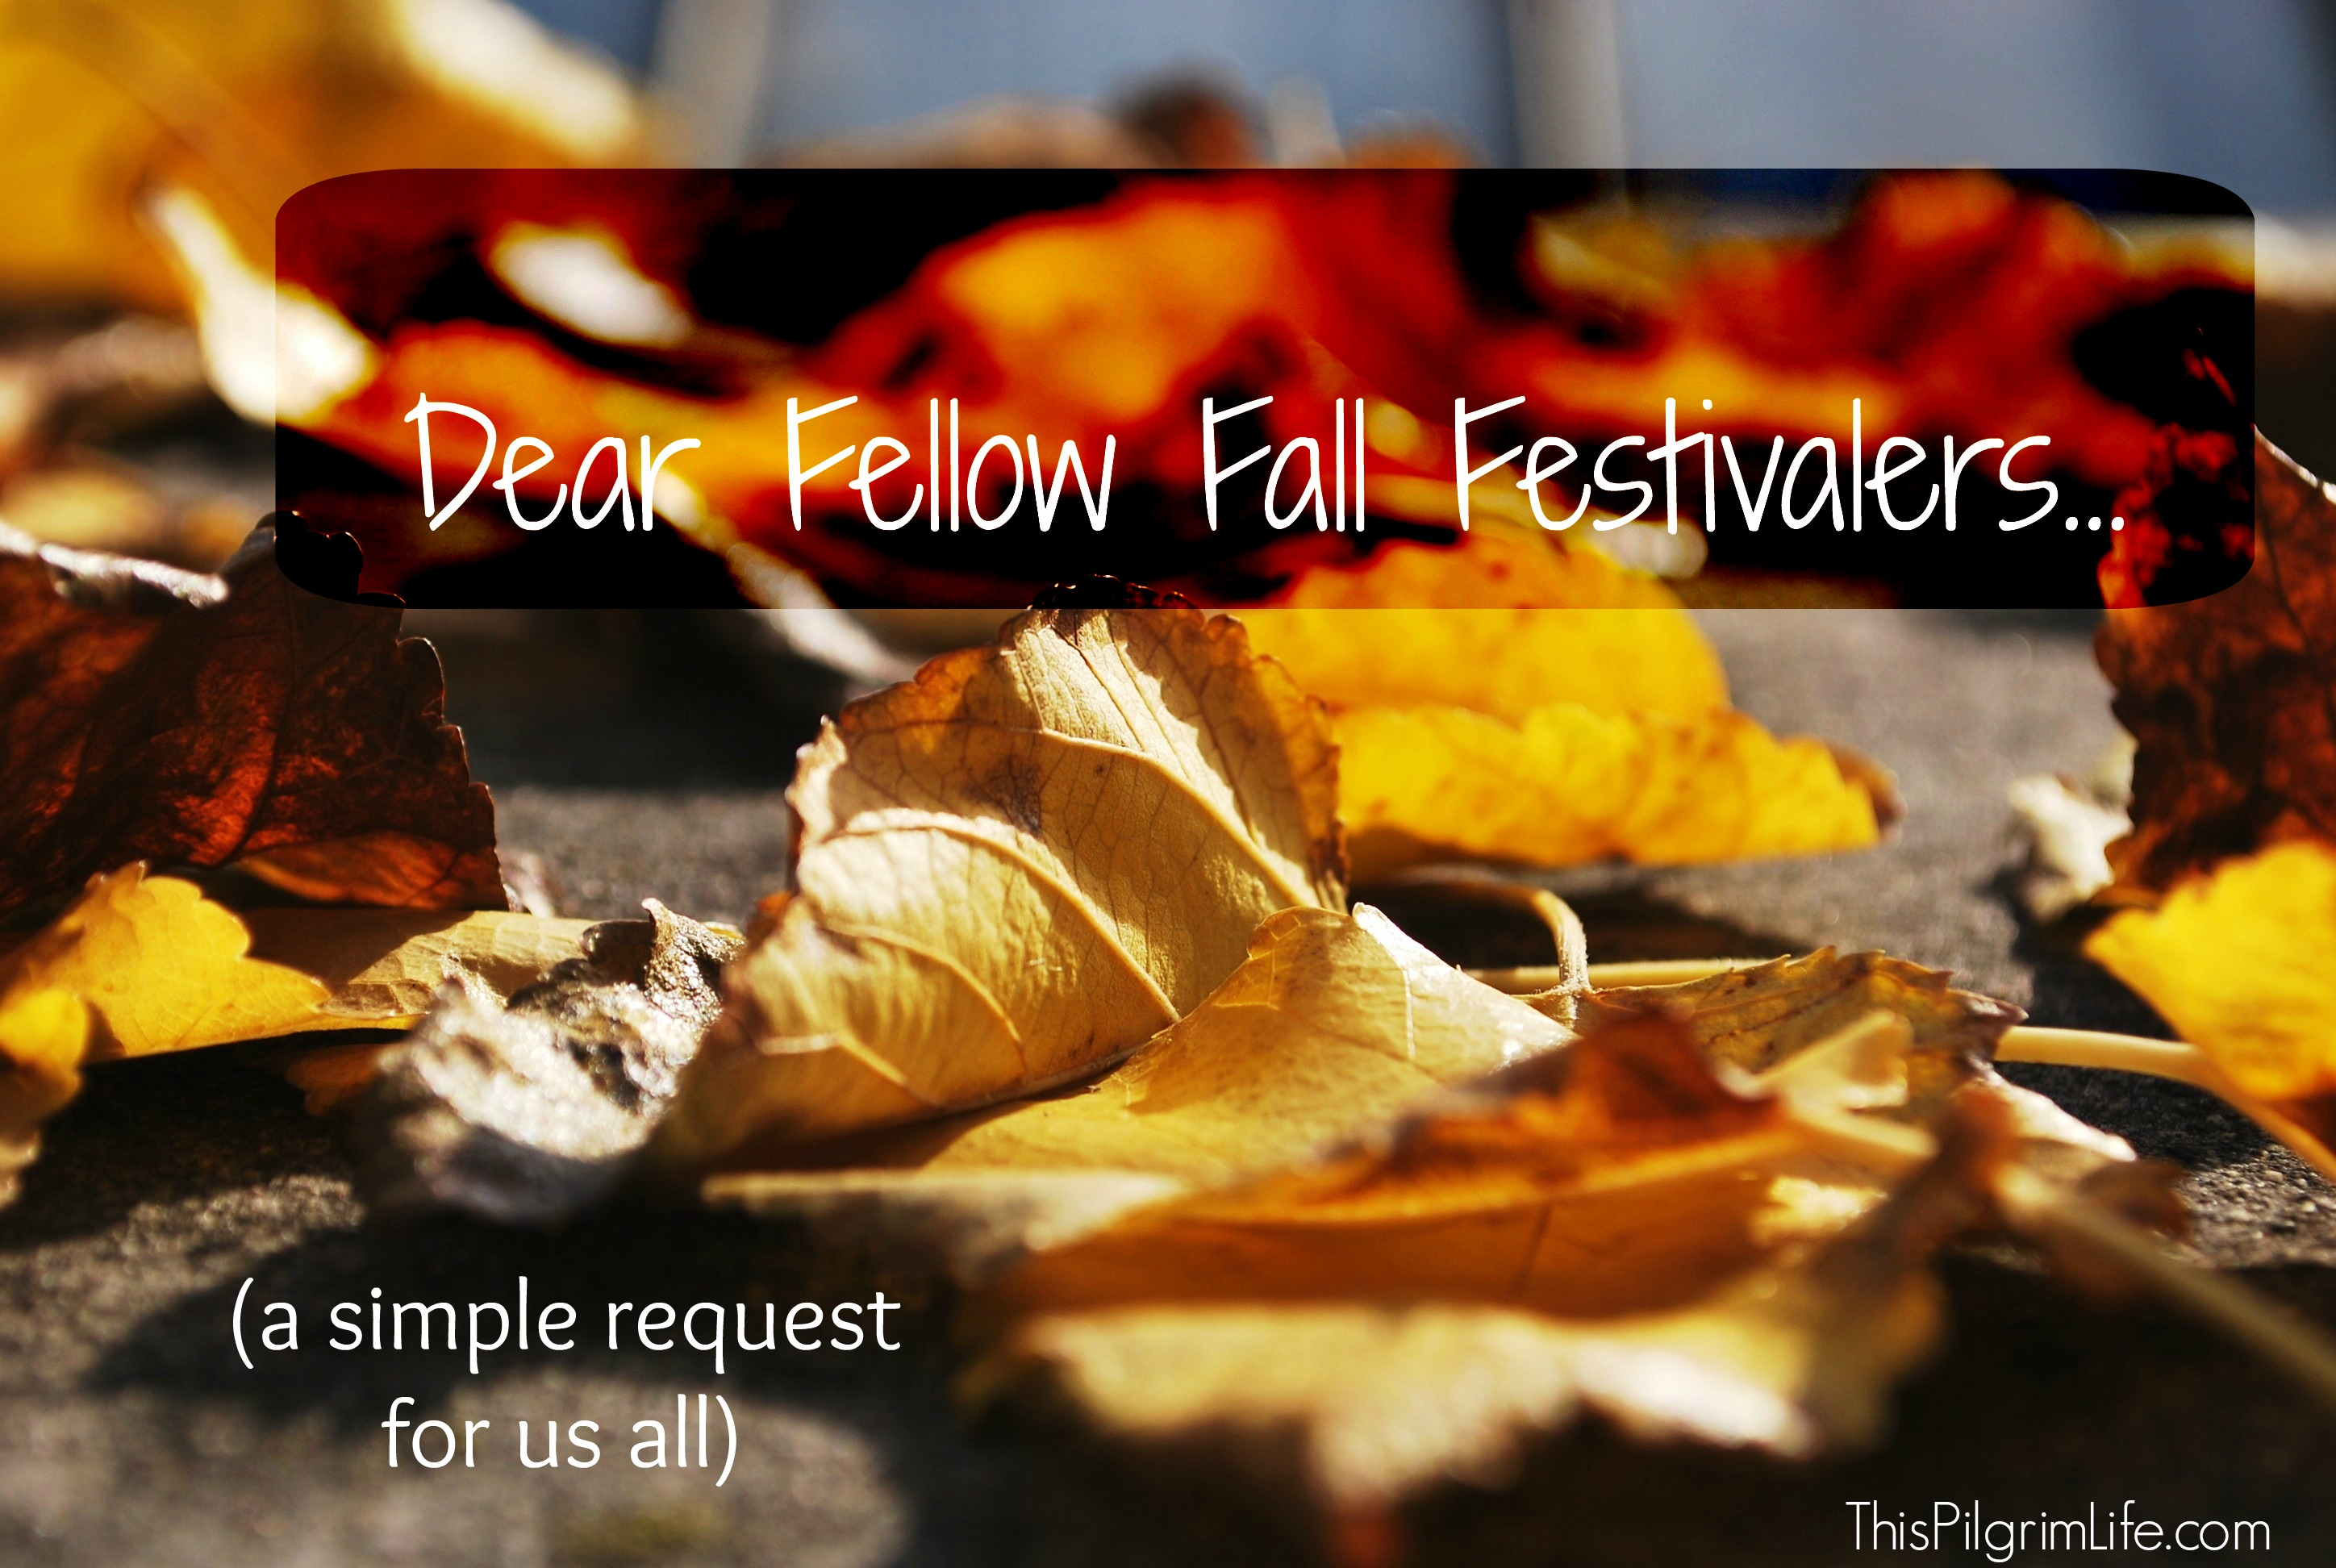 Dear Fellow Fall Festivalers